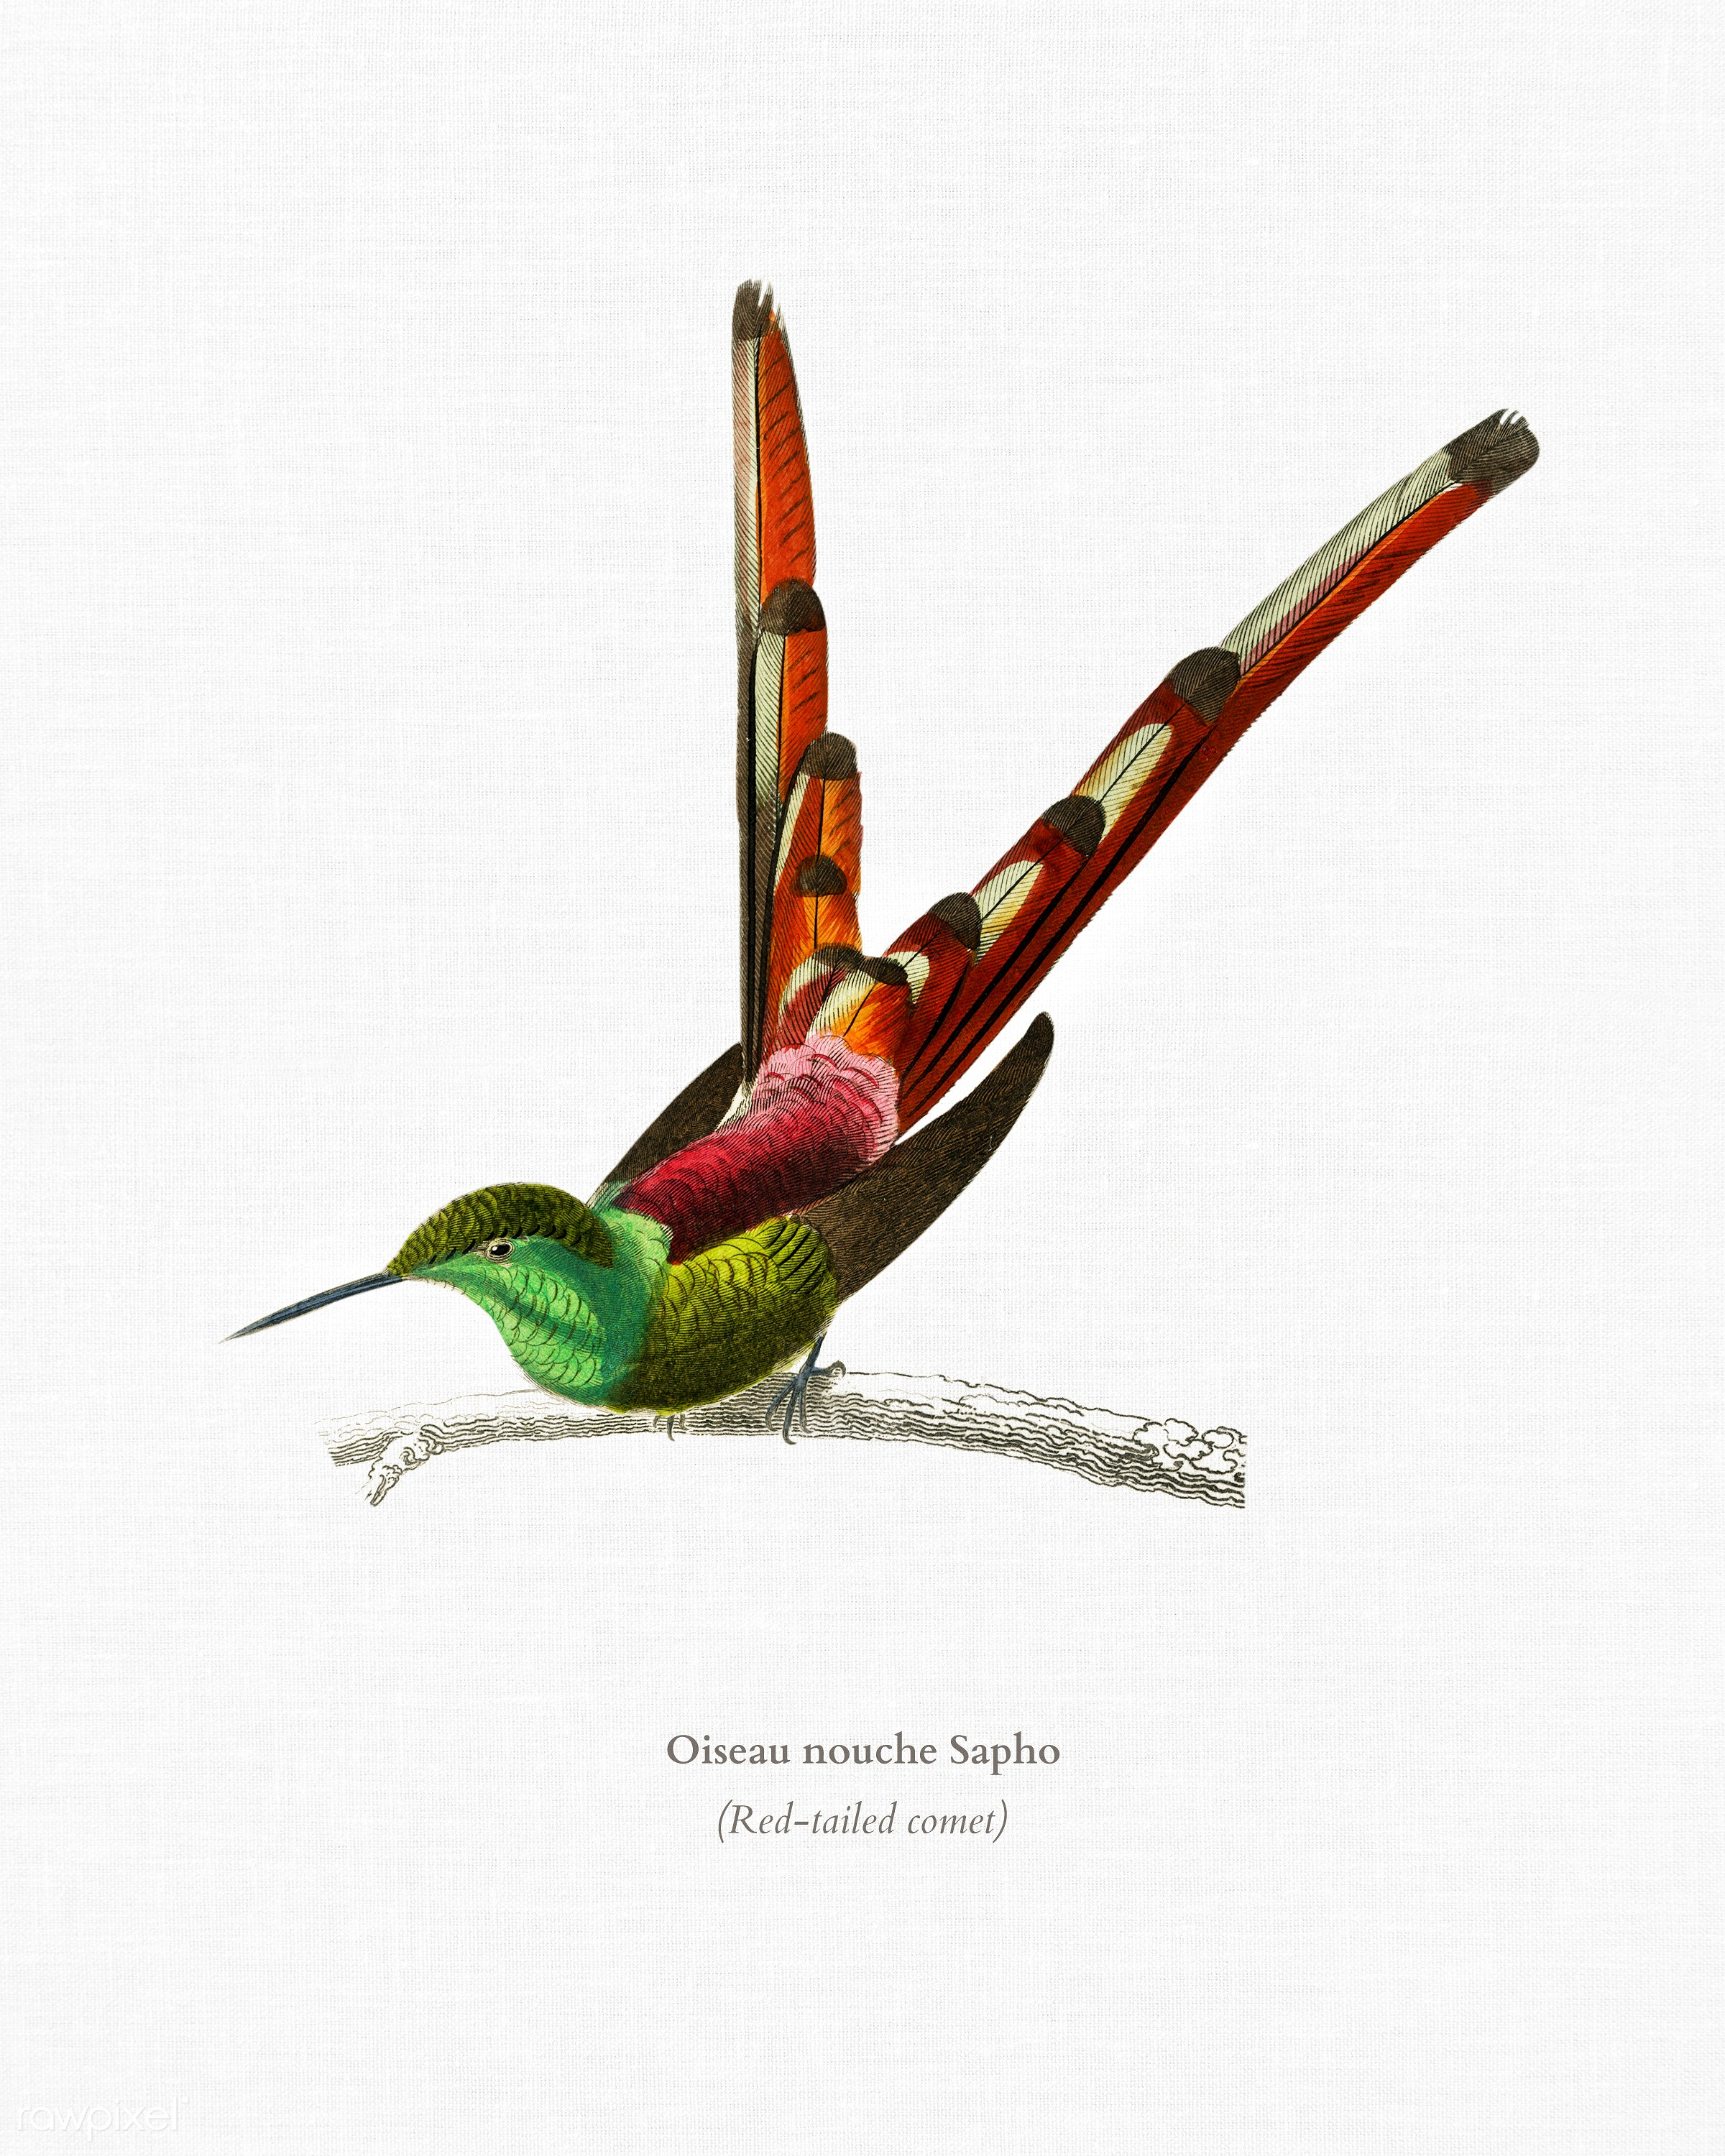 Red-tailed comet (Oiseau nouche Sapho) illustrated by Charles Dessalines D' Orbigny (1806-1876). Digitally enhanced from...